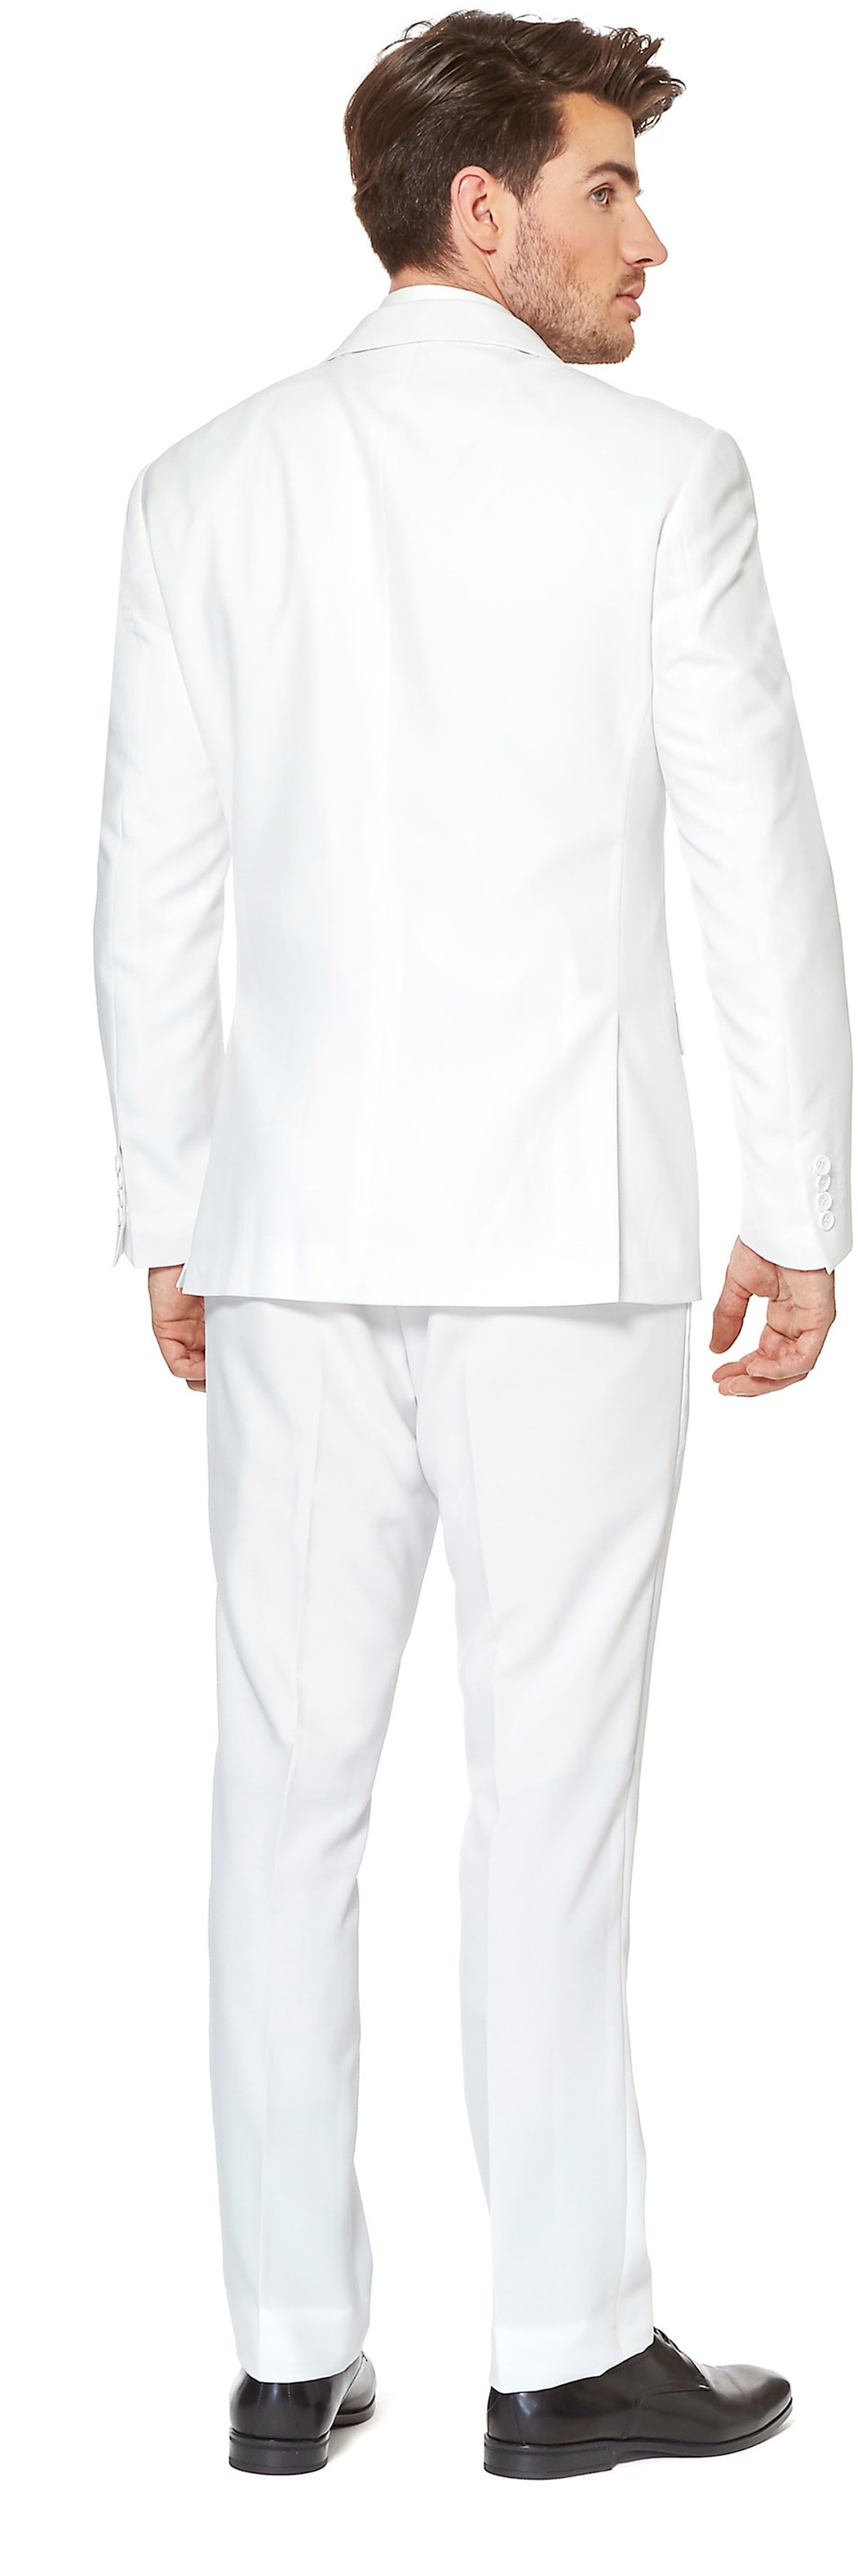 OppoSuits White Knight Suit foto 1